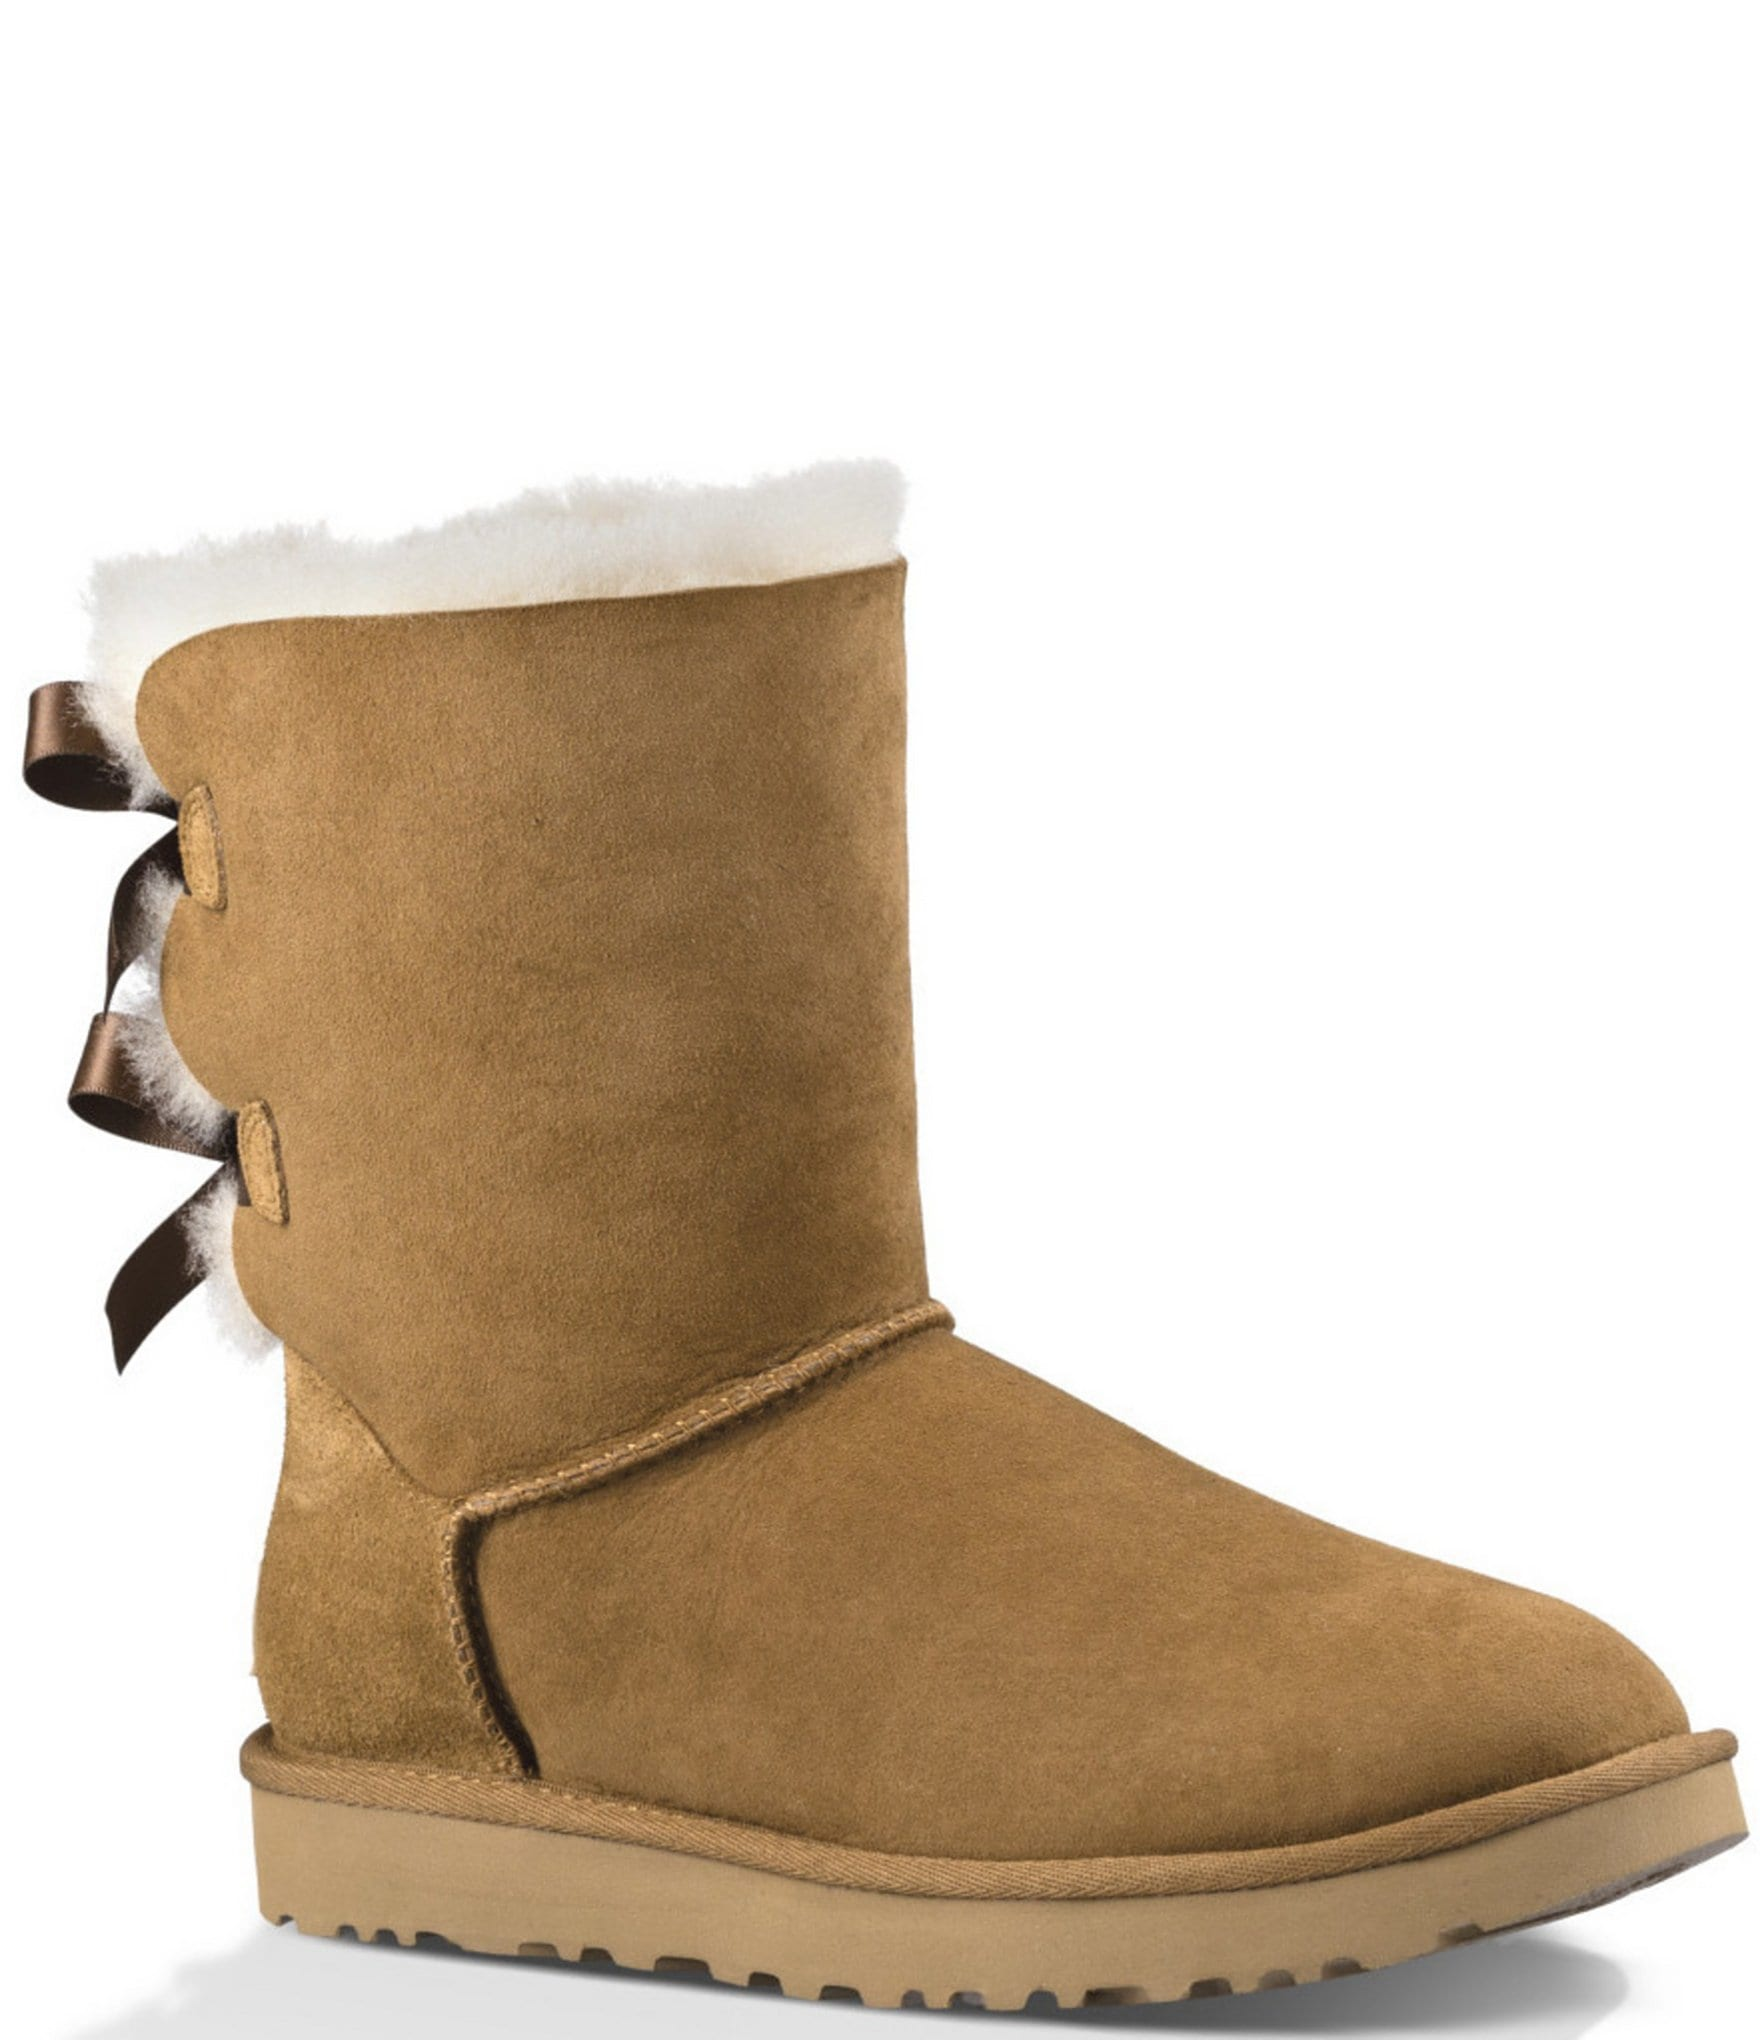 buy cheap 100% guaranteed outlet authentic UGG Australia Embellished Suede Booties cheap newest vCdHcz4